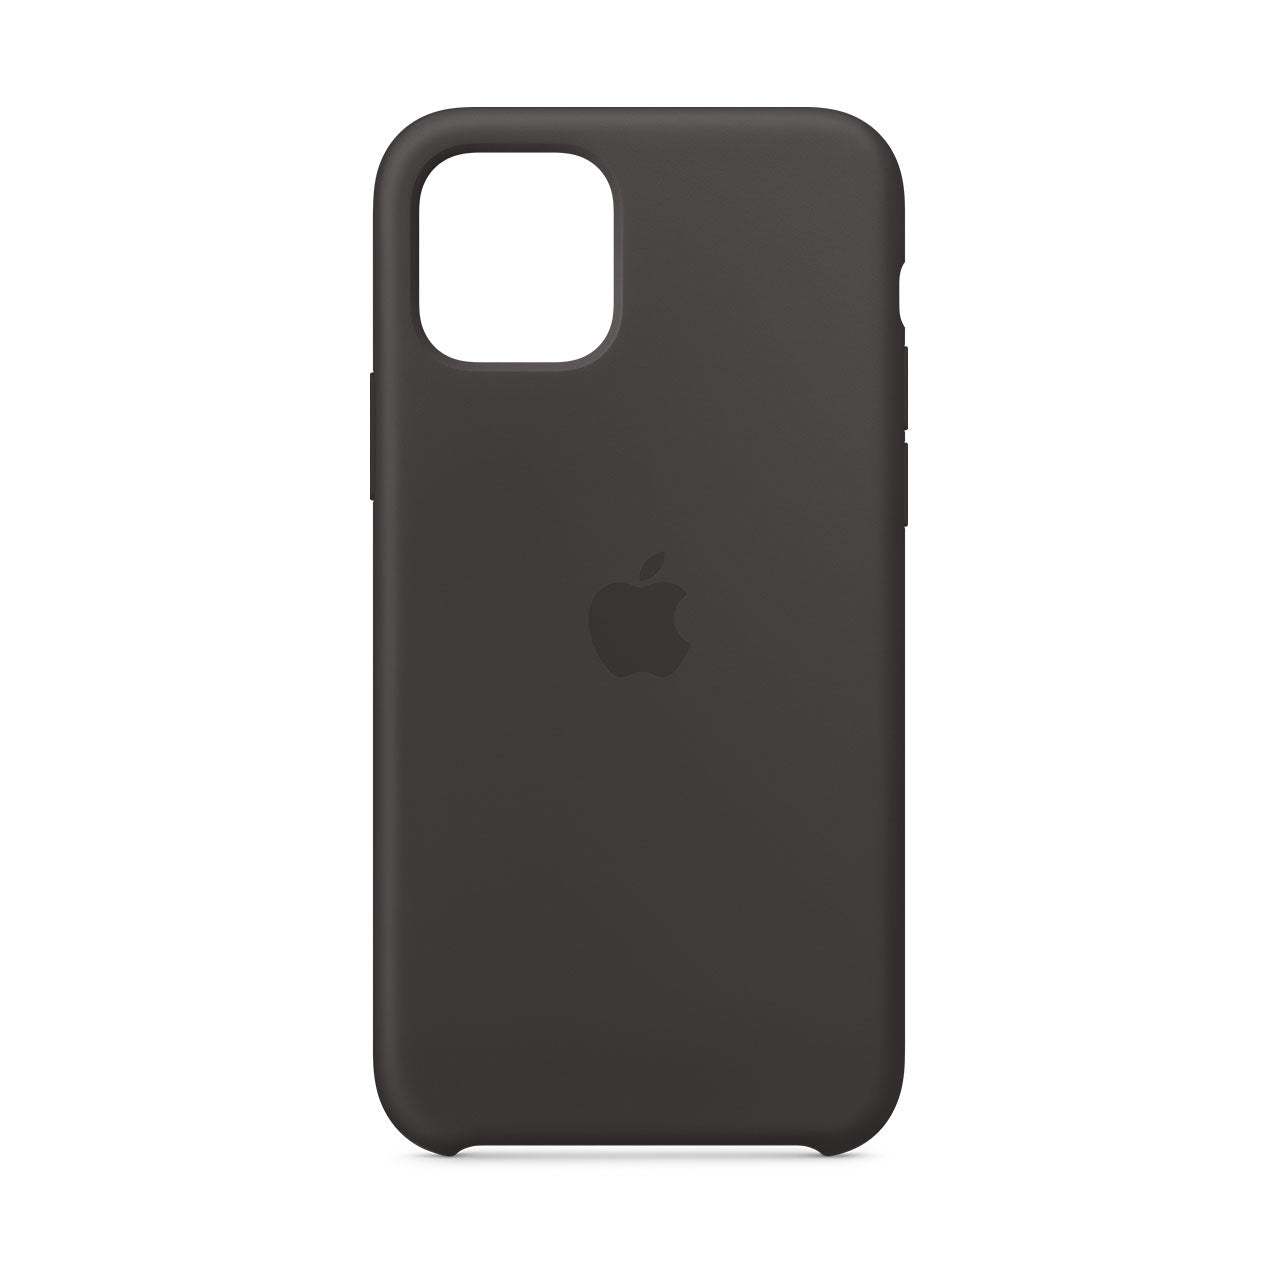 Silicone Case for iPhone 11 Pro Black